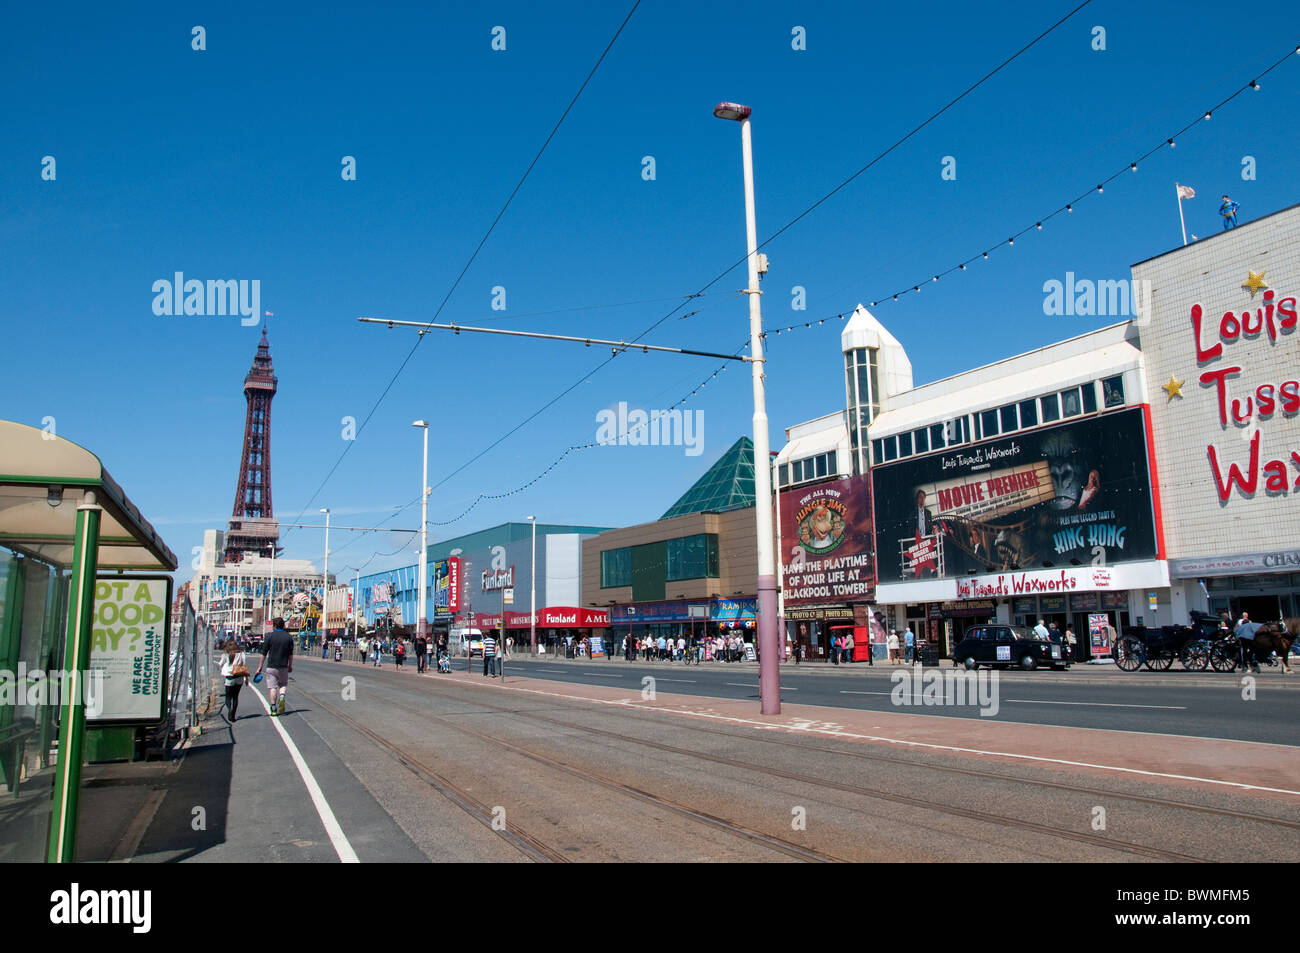 The promenade and tram tracks in Blackpool on the coast of Lancashire in Northern England - Stock Image